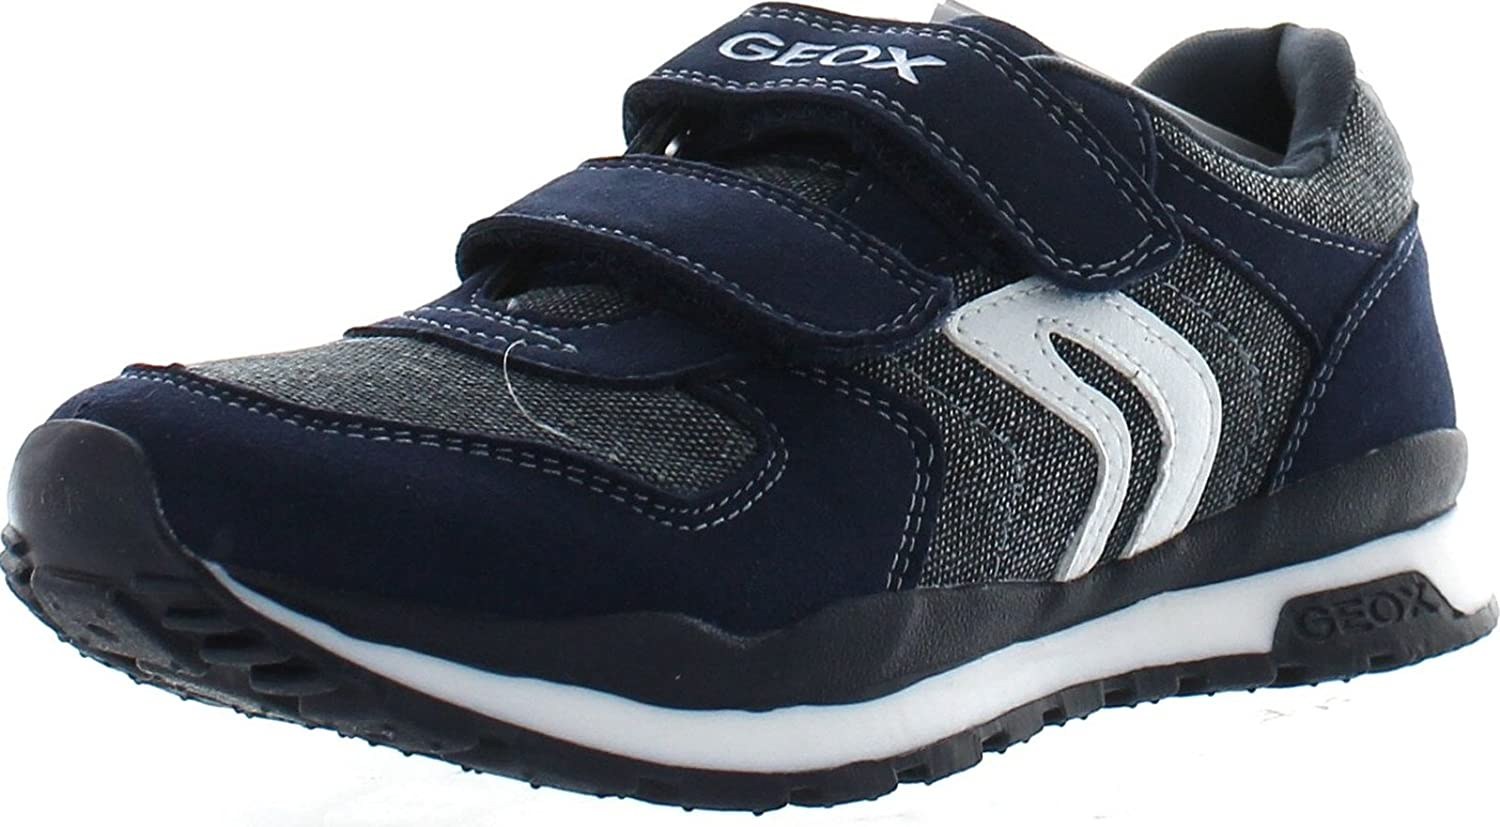 Geox Boys J Pavel Boy Fashion Sneakers,Navy,26